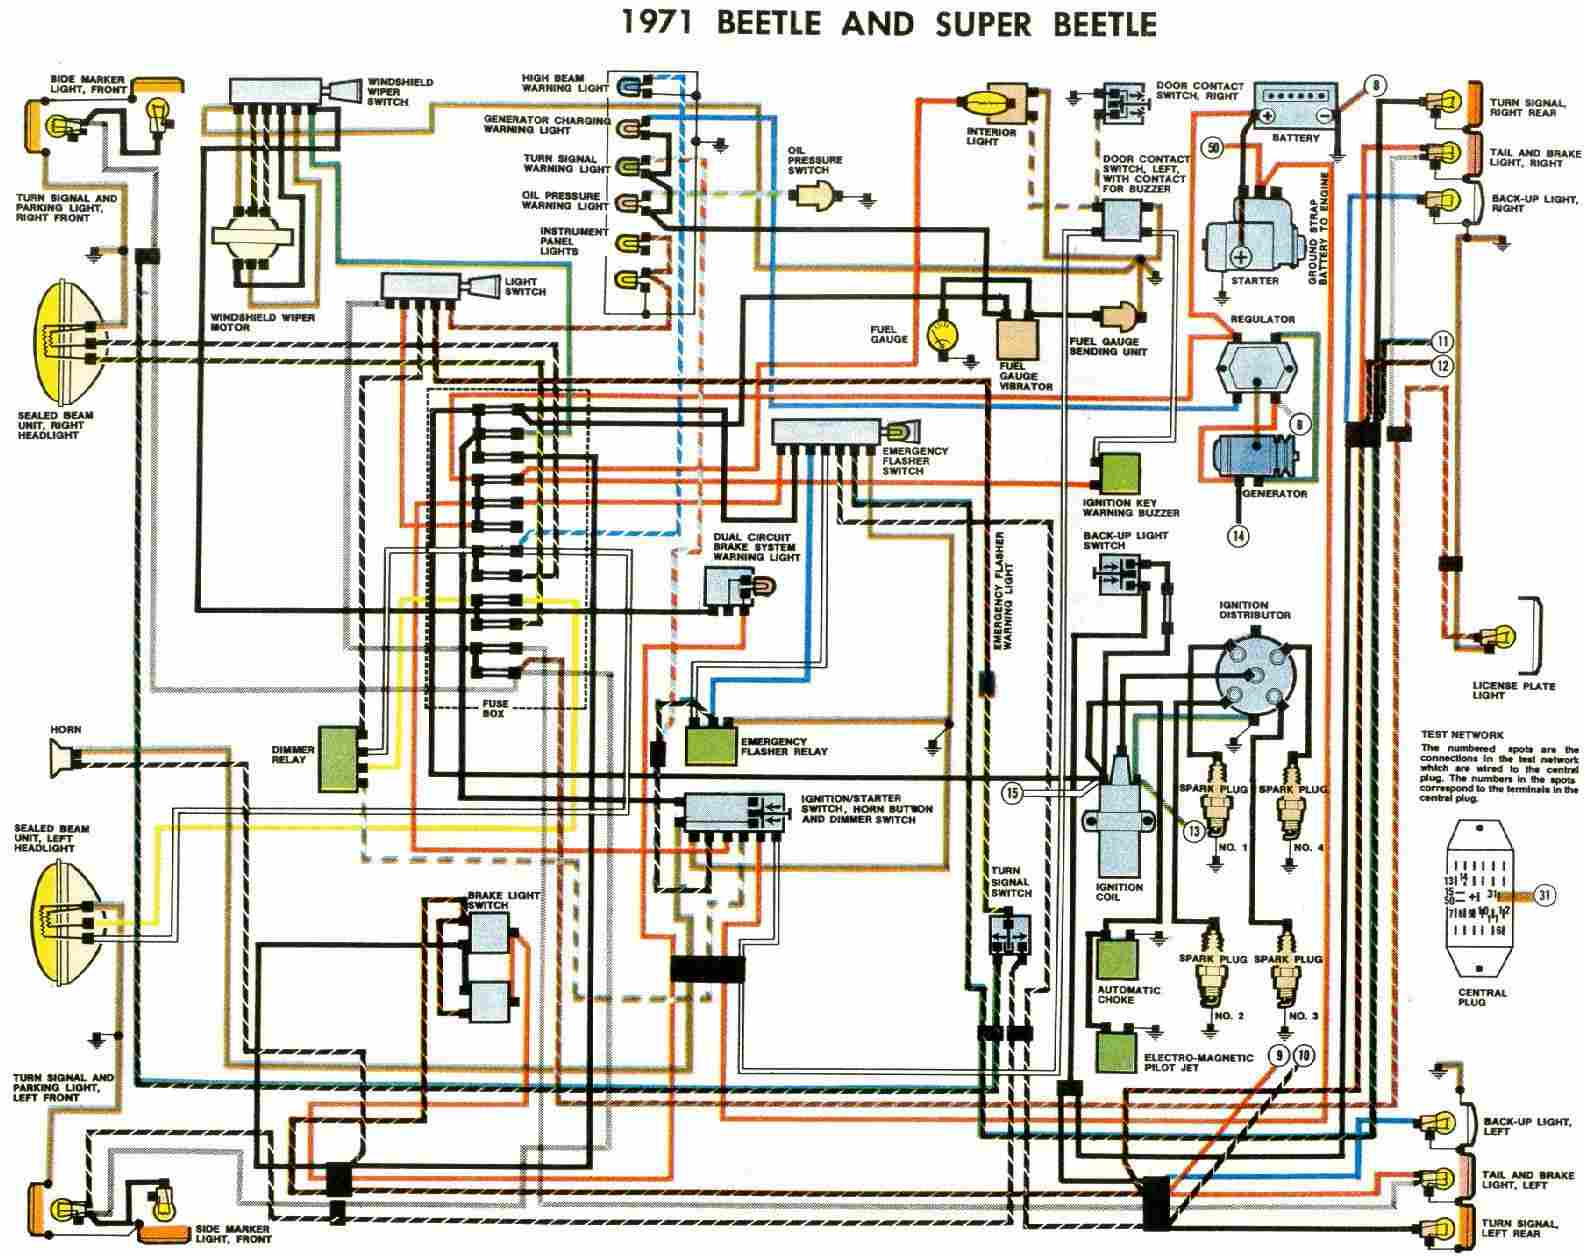 Check moreover 2012 Jetta 2 5 Se Fuse Diagram likewise Fuse Panel Fuse Diagram For 2014 Jetta in addition 1988 Mustang Gt Hard To Start When Warm together with Vw Beetle And Super Beetle 1971. on 2005 vw beetle instrument panel fuse box diagram